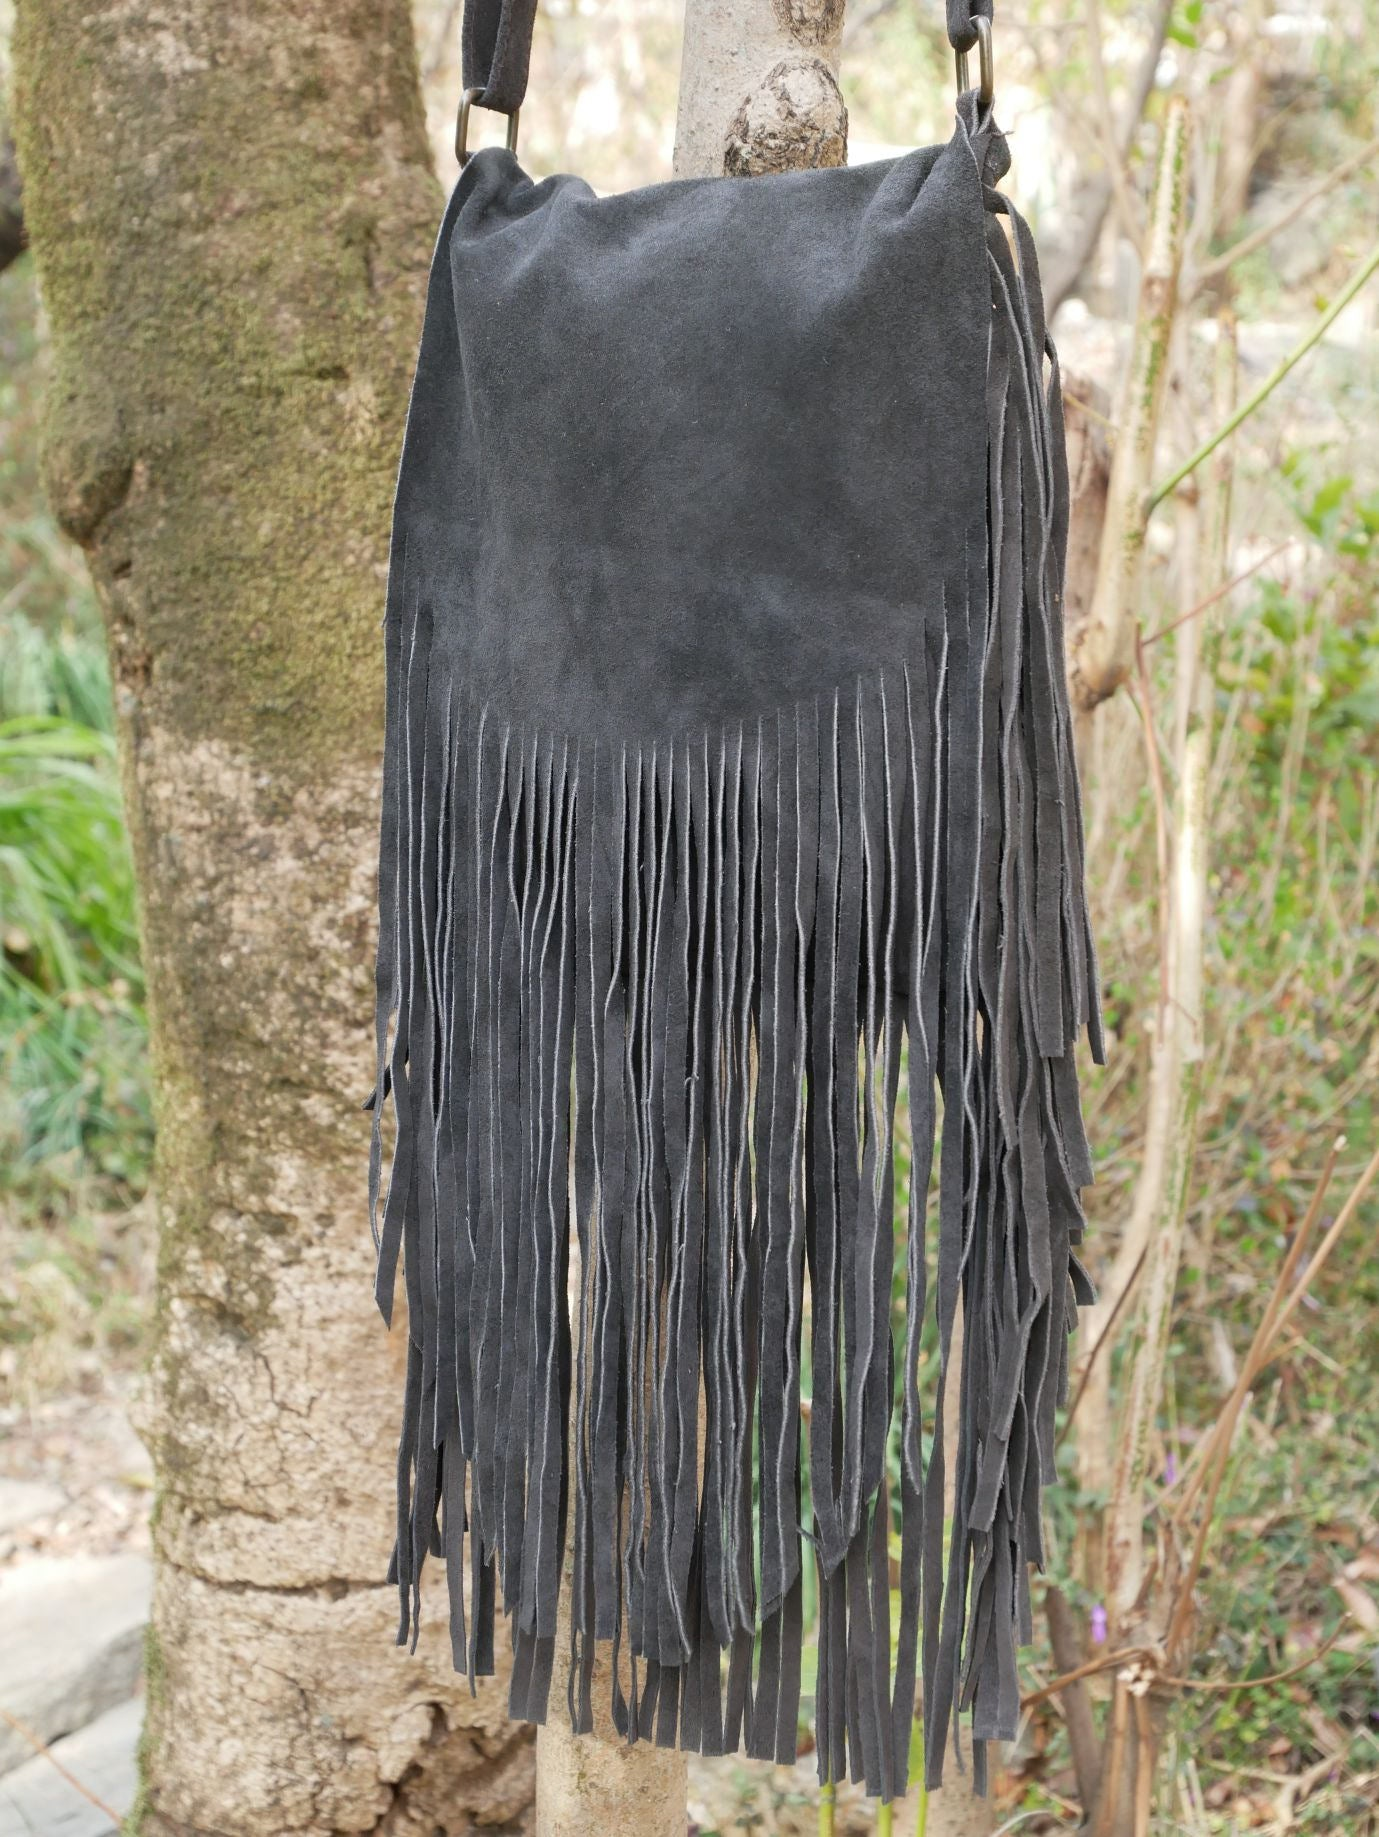 Boho Fringe bag sued leather crossbody bag boho chic shoulder bag